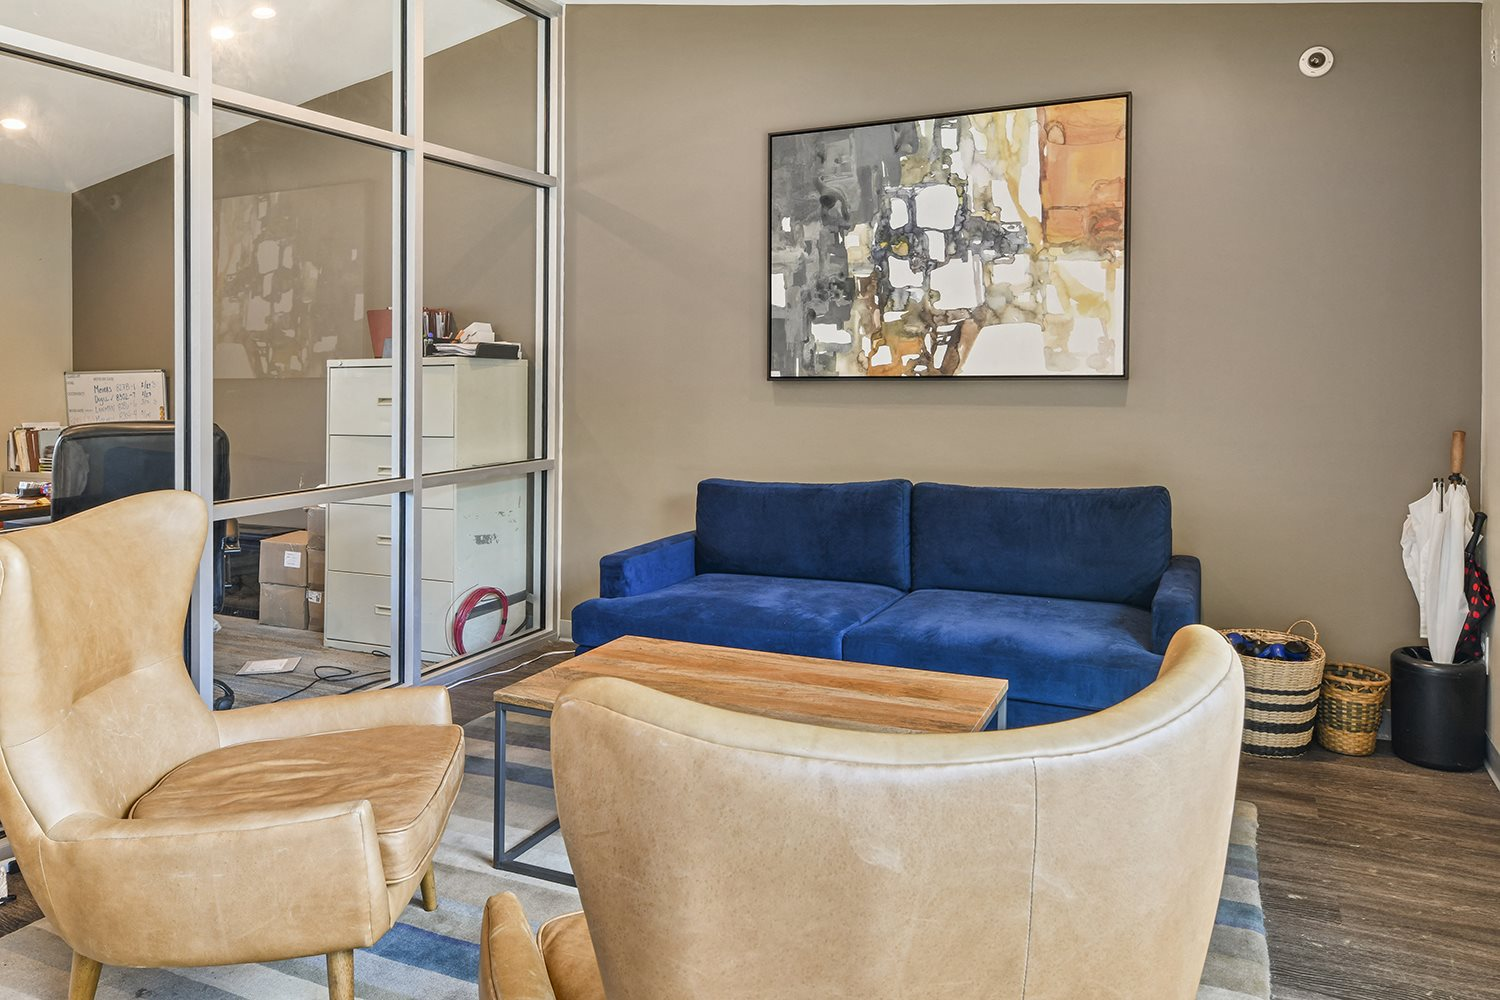 Comfy Sofa's With Artistic Painting at Heritage Hill Estates Apartments, Cincinnati, OH